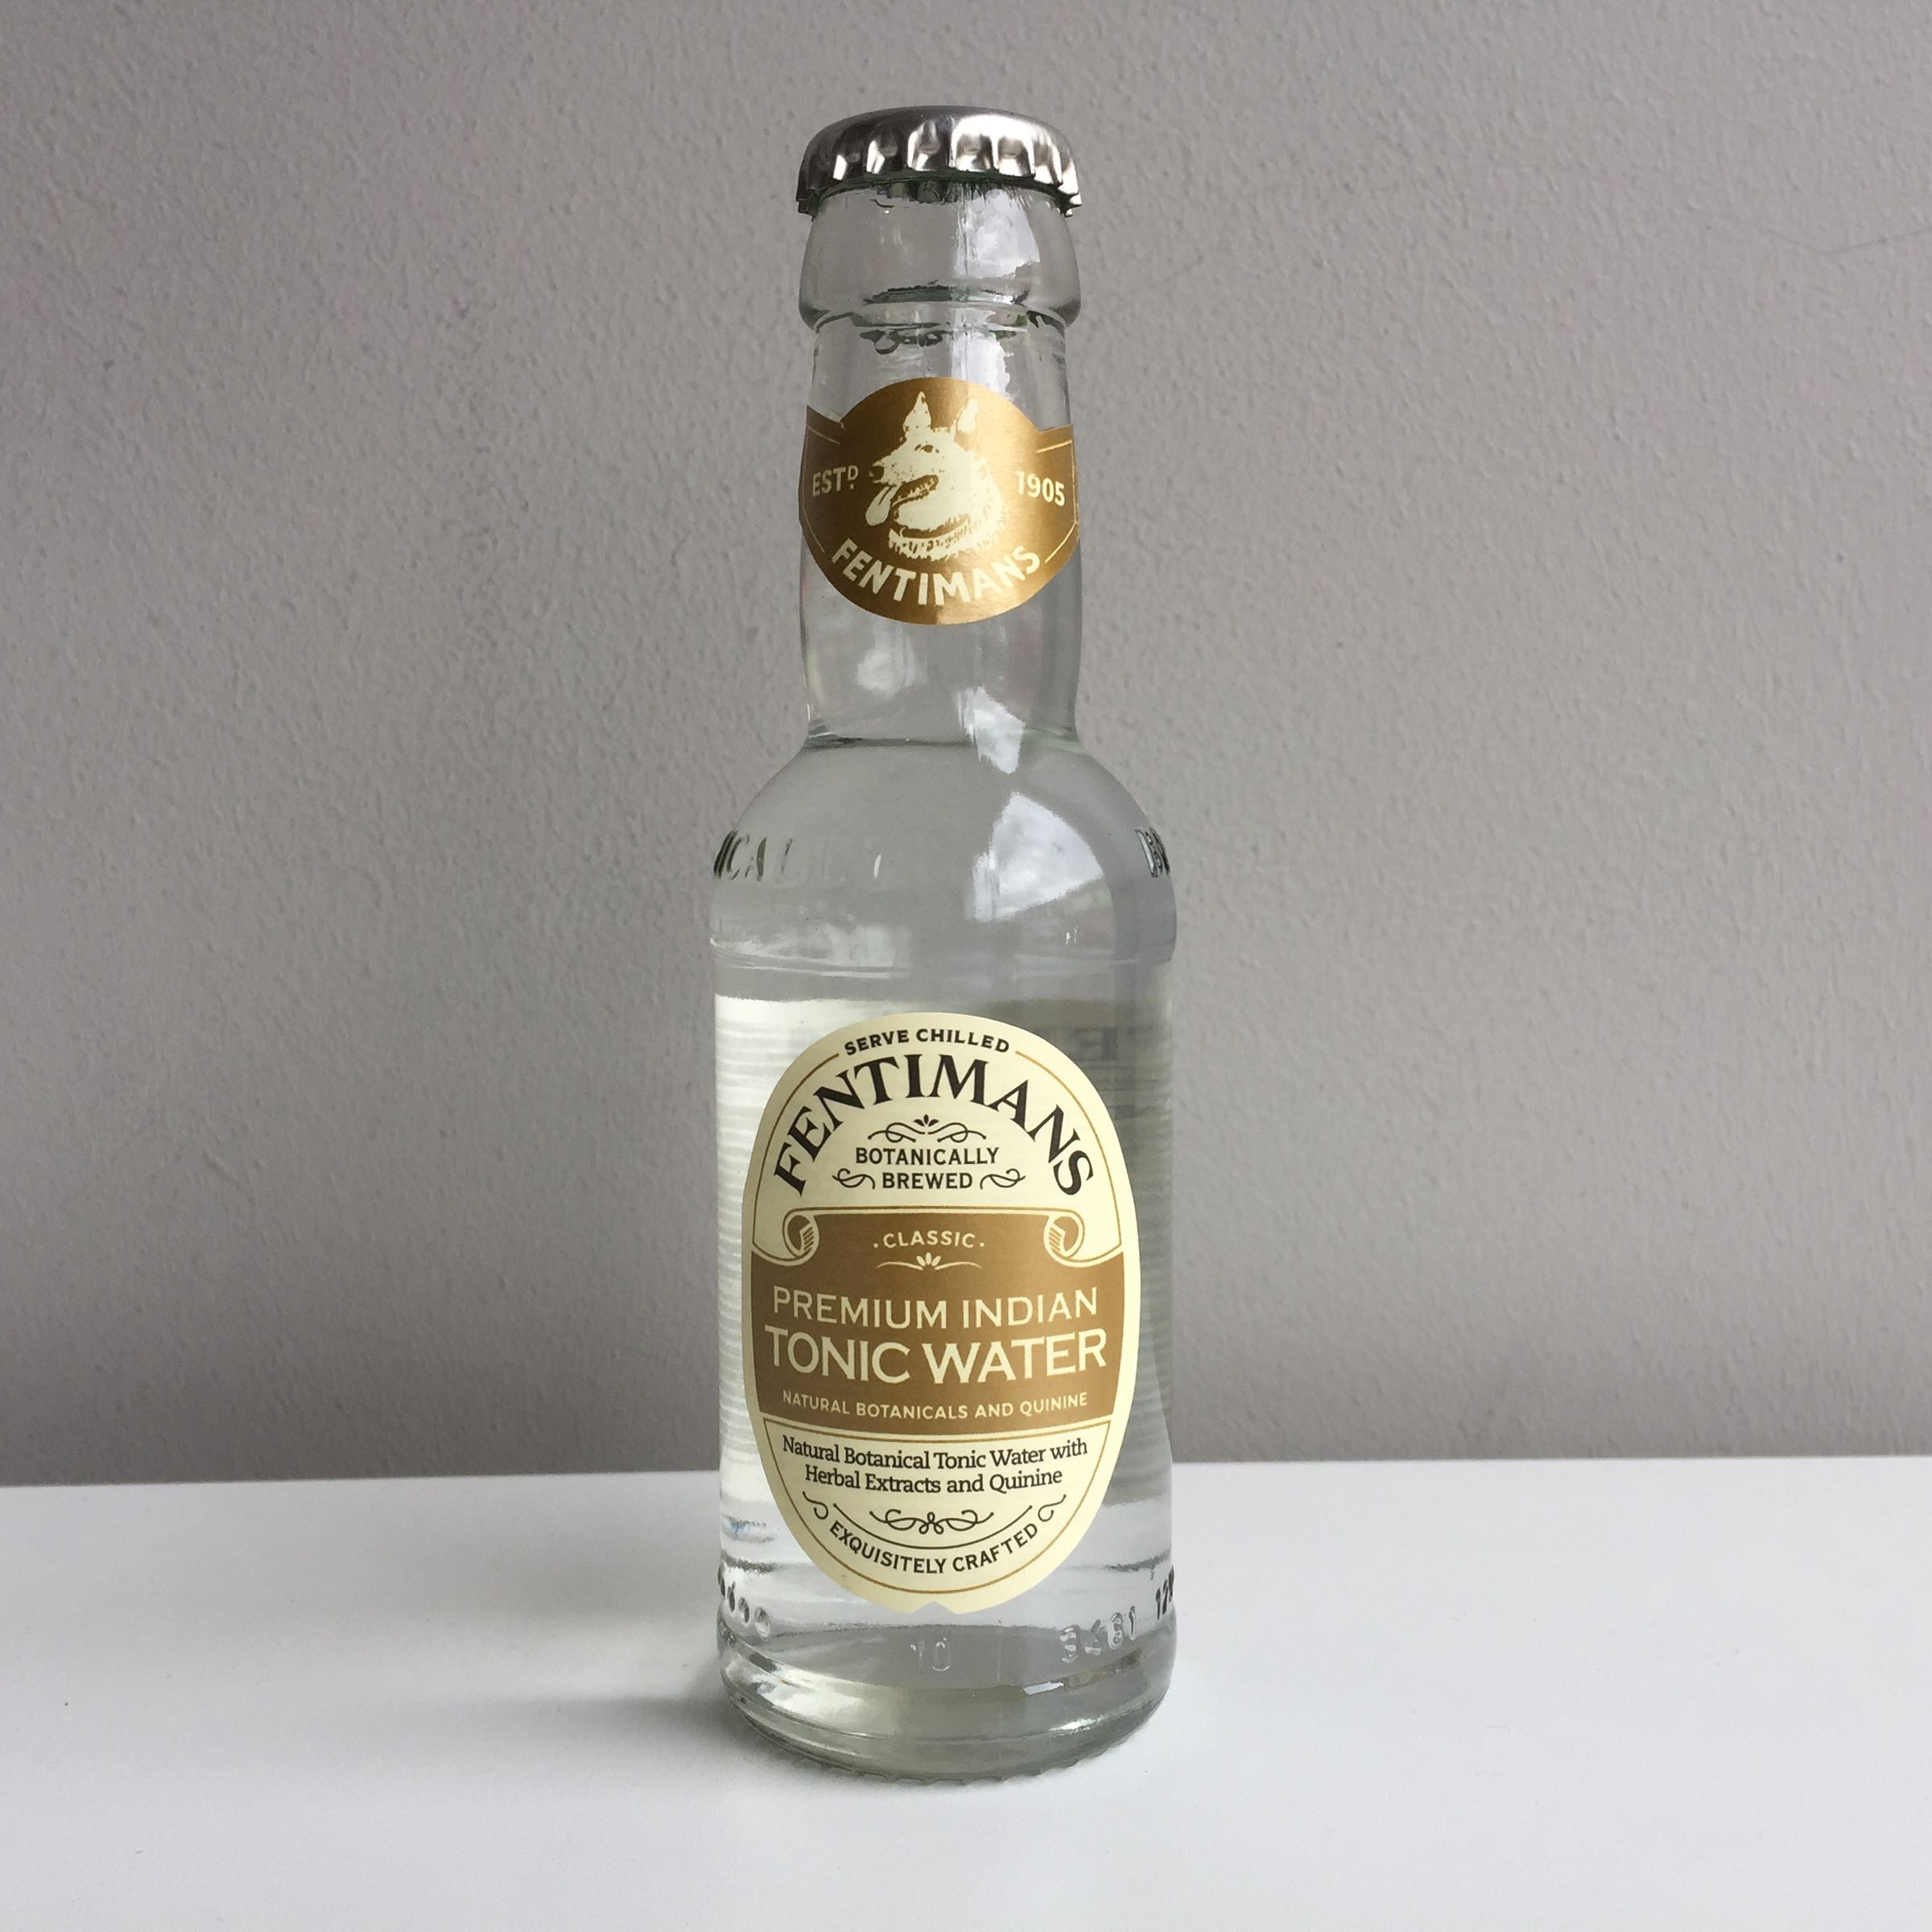 Fentimans - Premium Indian Tonic Water 125ml